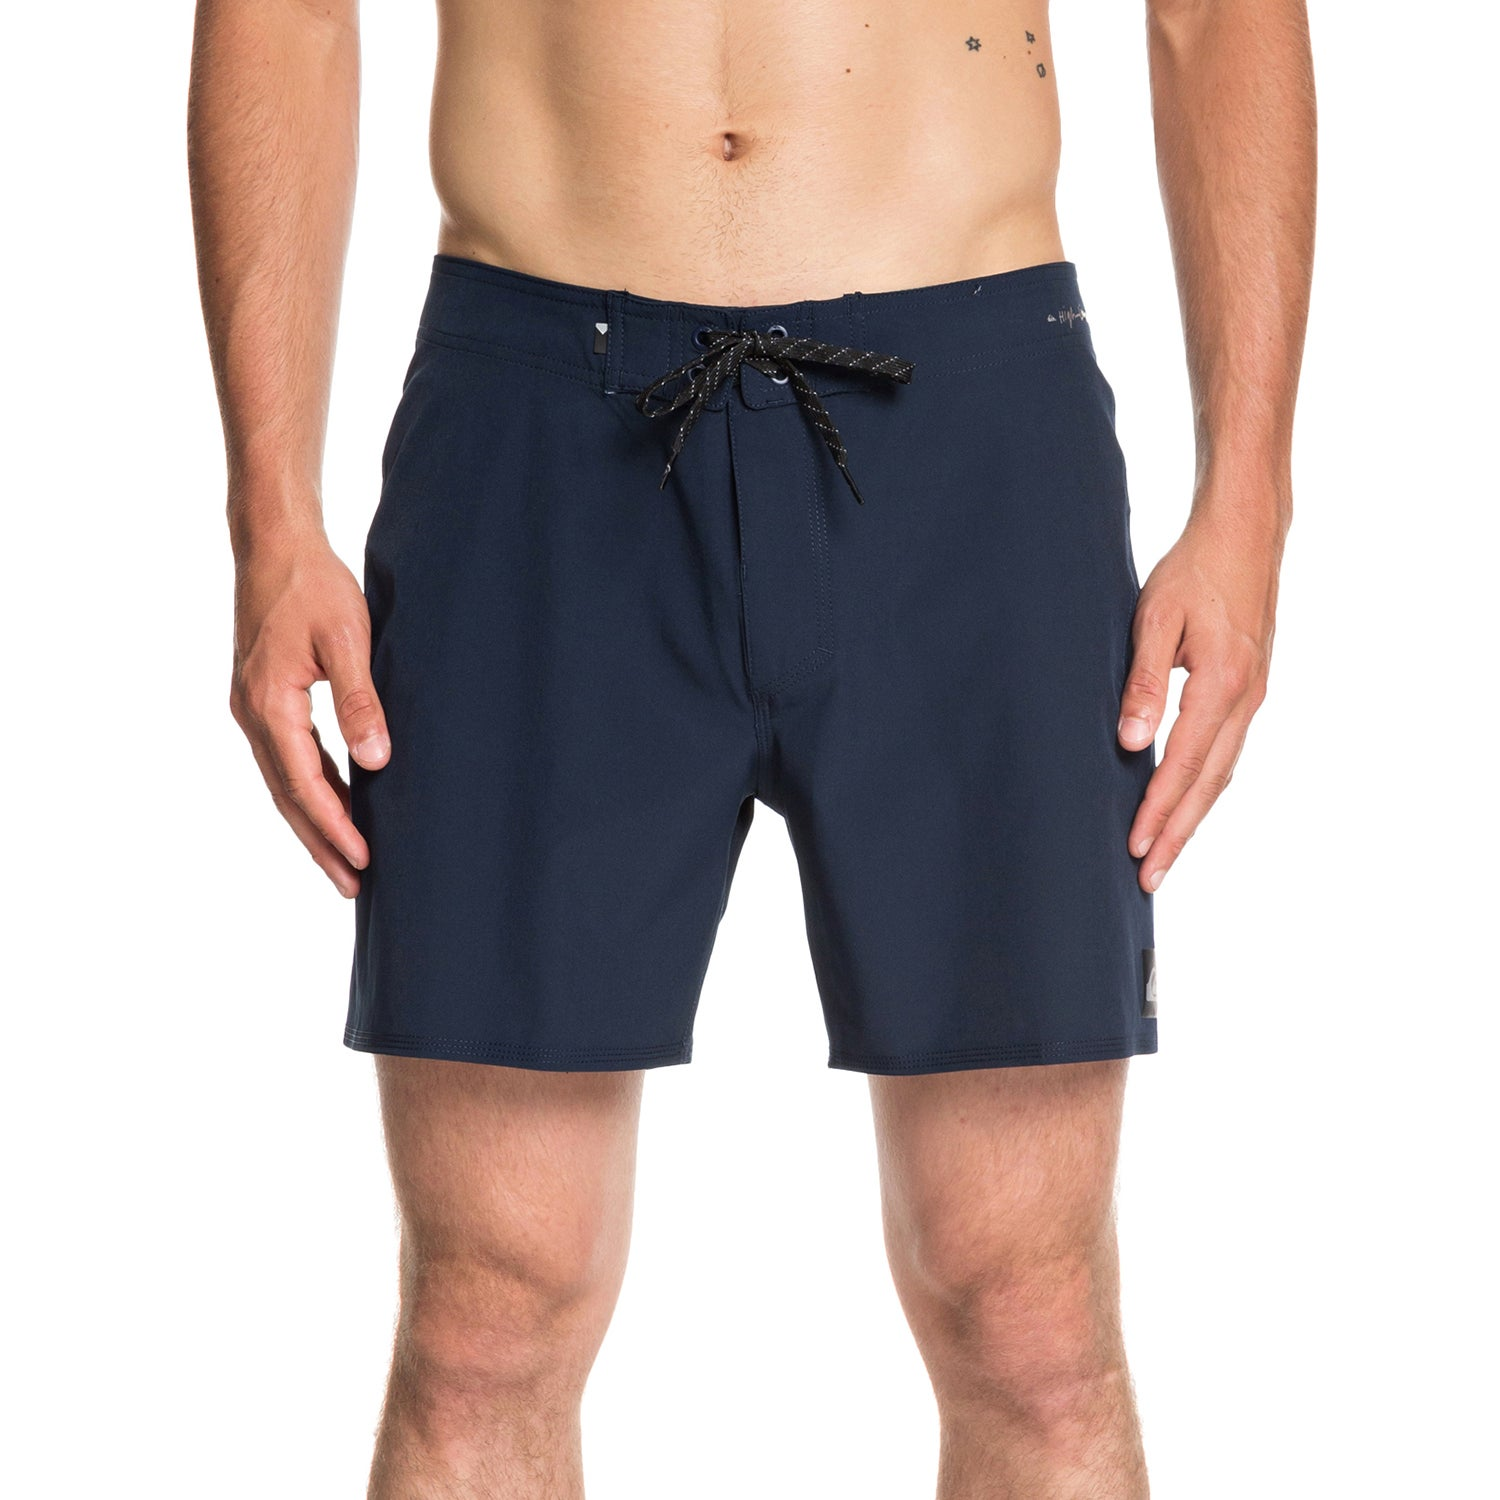 4d043e21a6 Details about Quiksilver Highline Kaimana 16in Mens Shorts Boardshorts -  Navy Blazer All Sizes